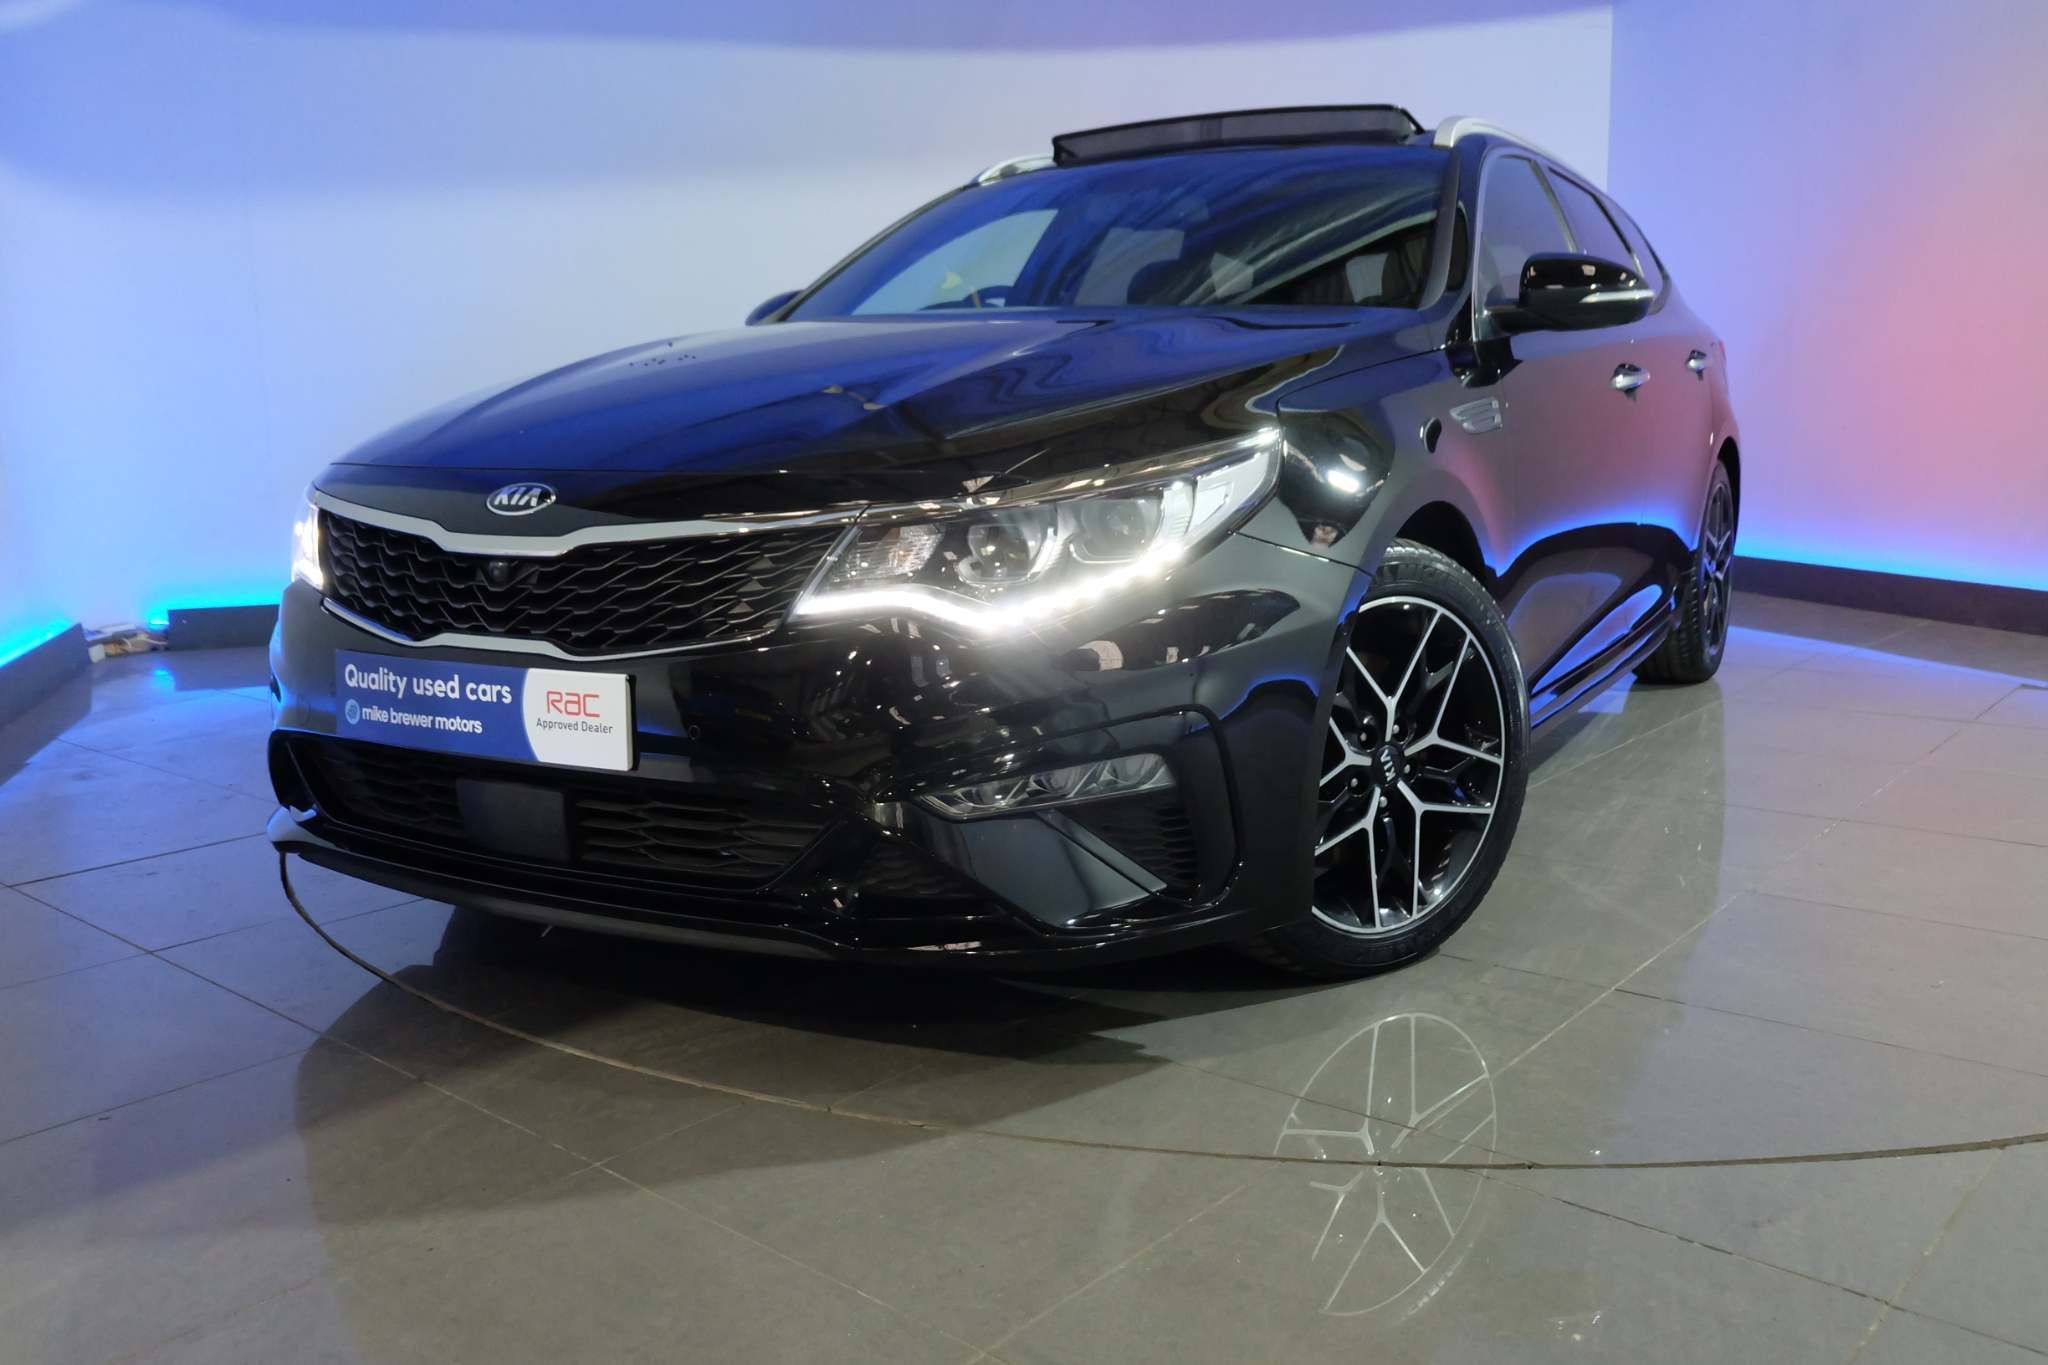 Used Kia Optima 1.6 Crdi Gt-Line S Sportswagon Dct (s/s) 5dr